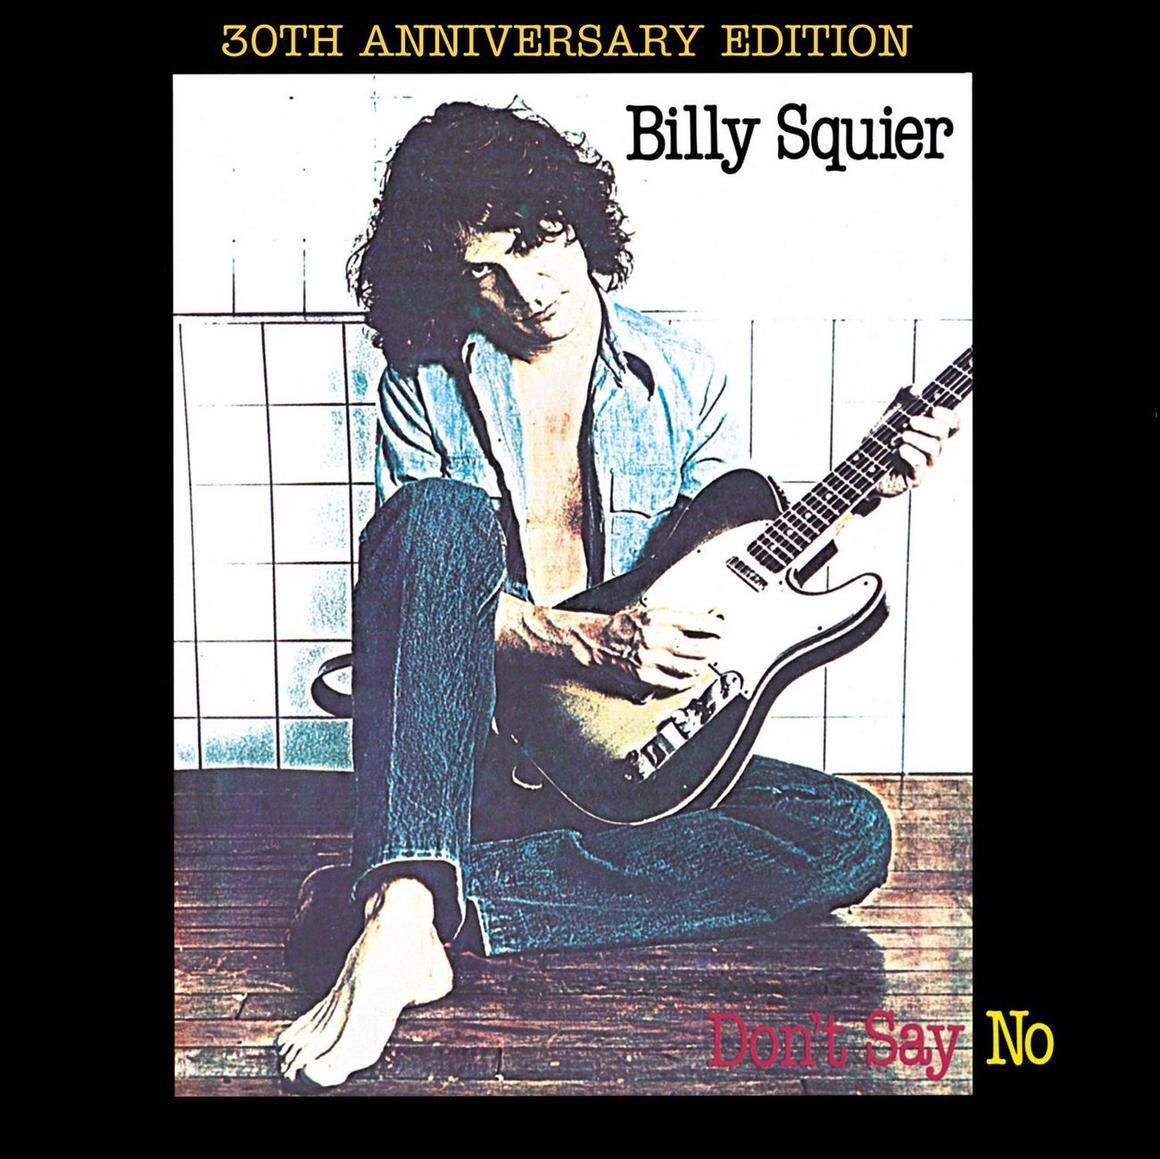 This is my jam: The Stroke (2010 - Remaster) by Billy Squier on Foreigner Radio ♫ #iHeartRadio #NowPlaying